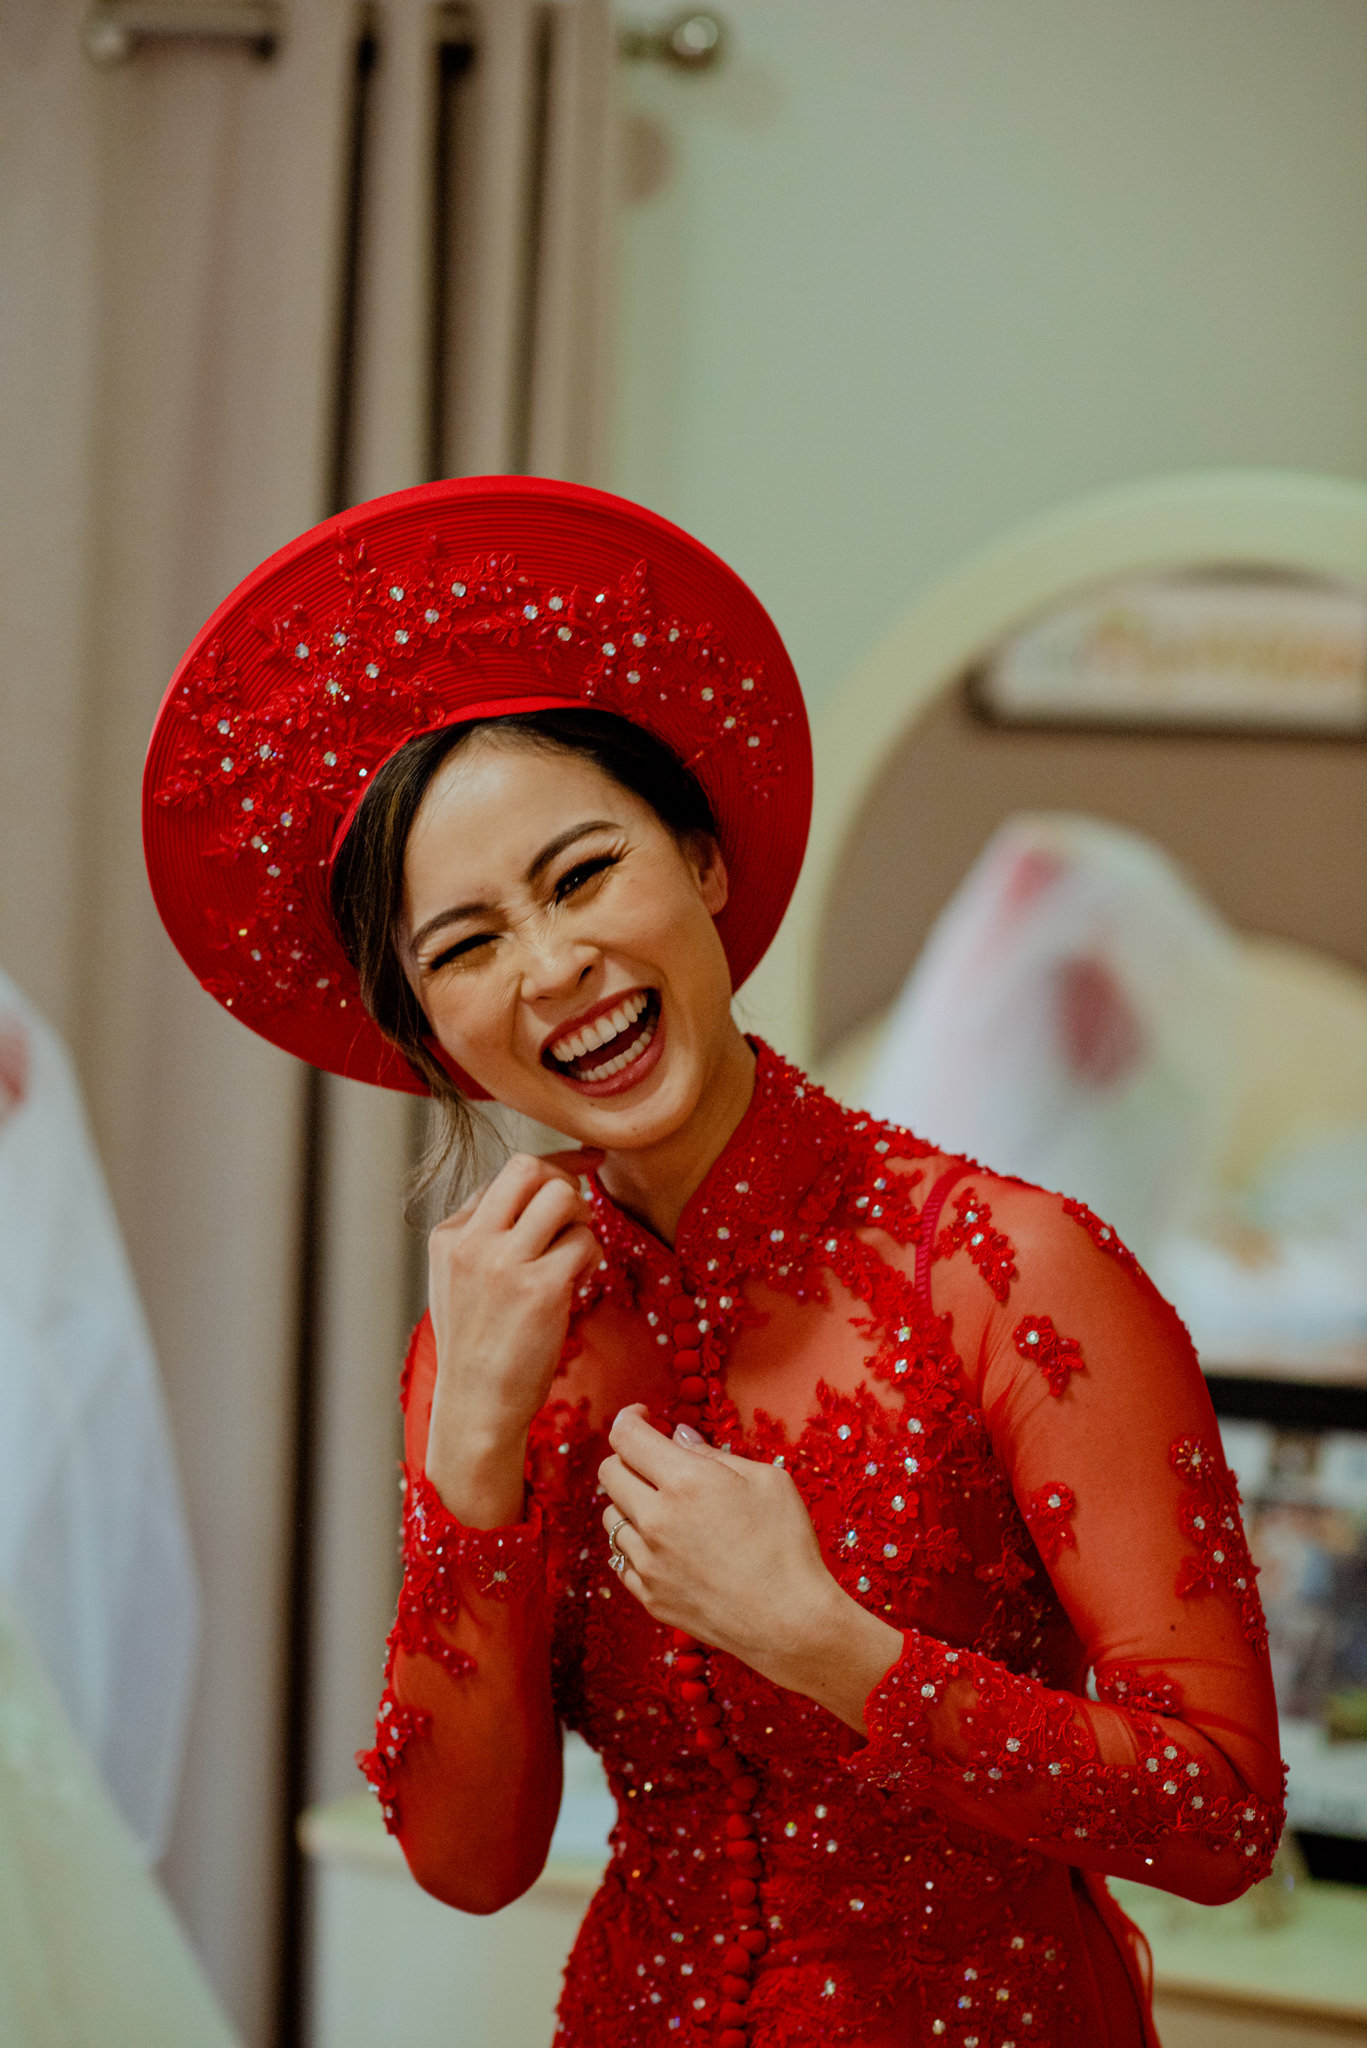 Vietnamese woman laughs as she wears traditional red dress and hat